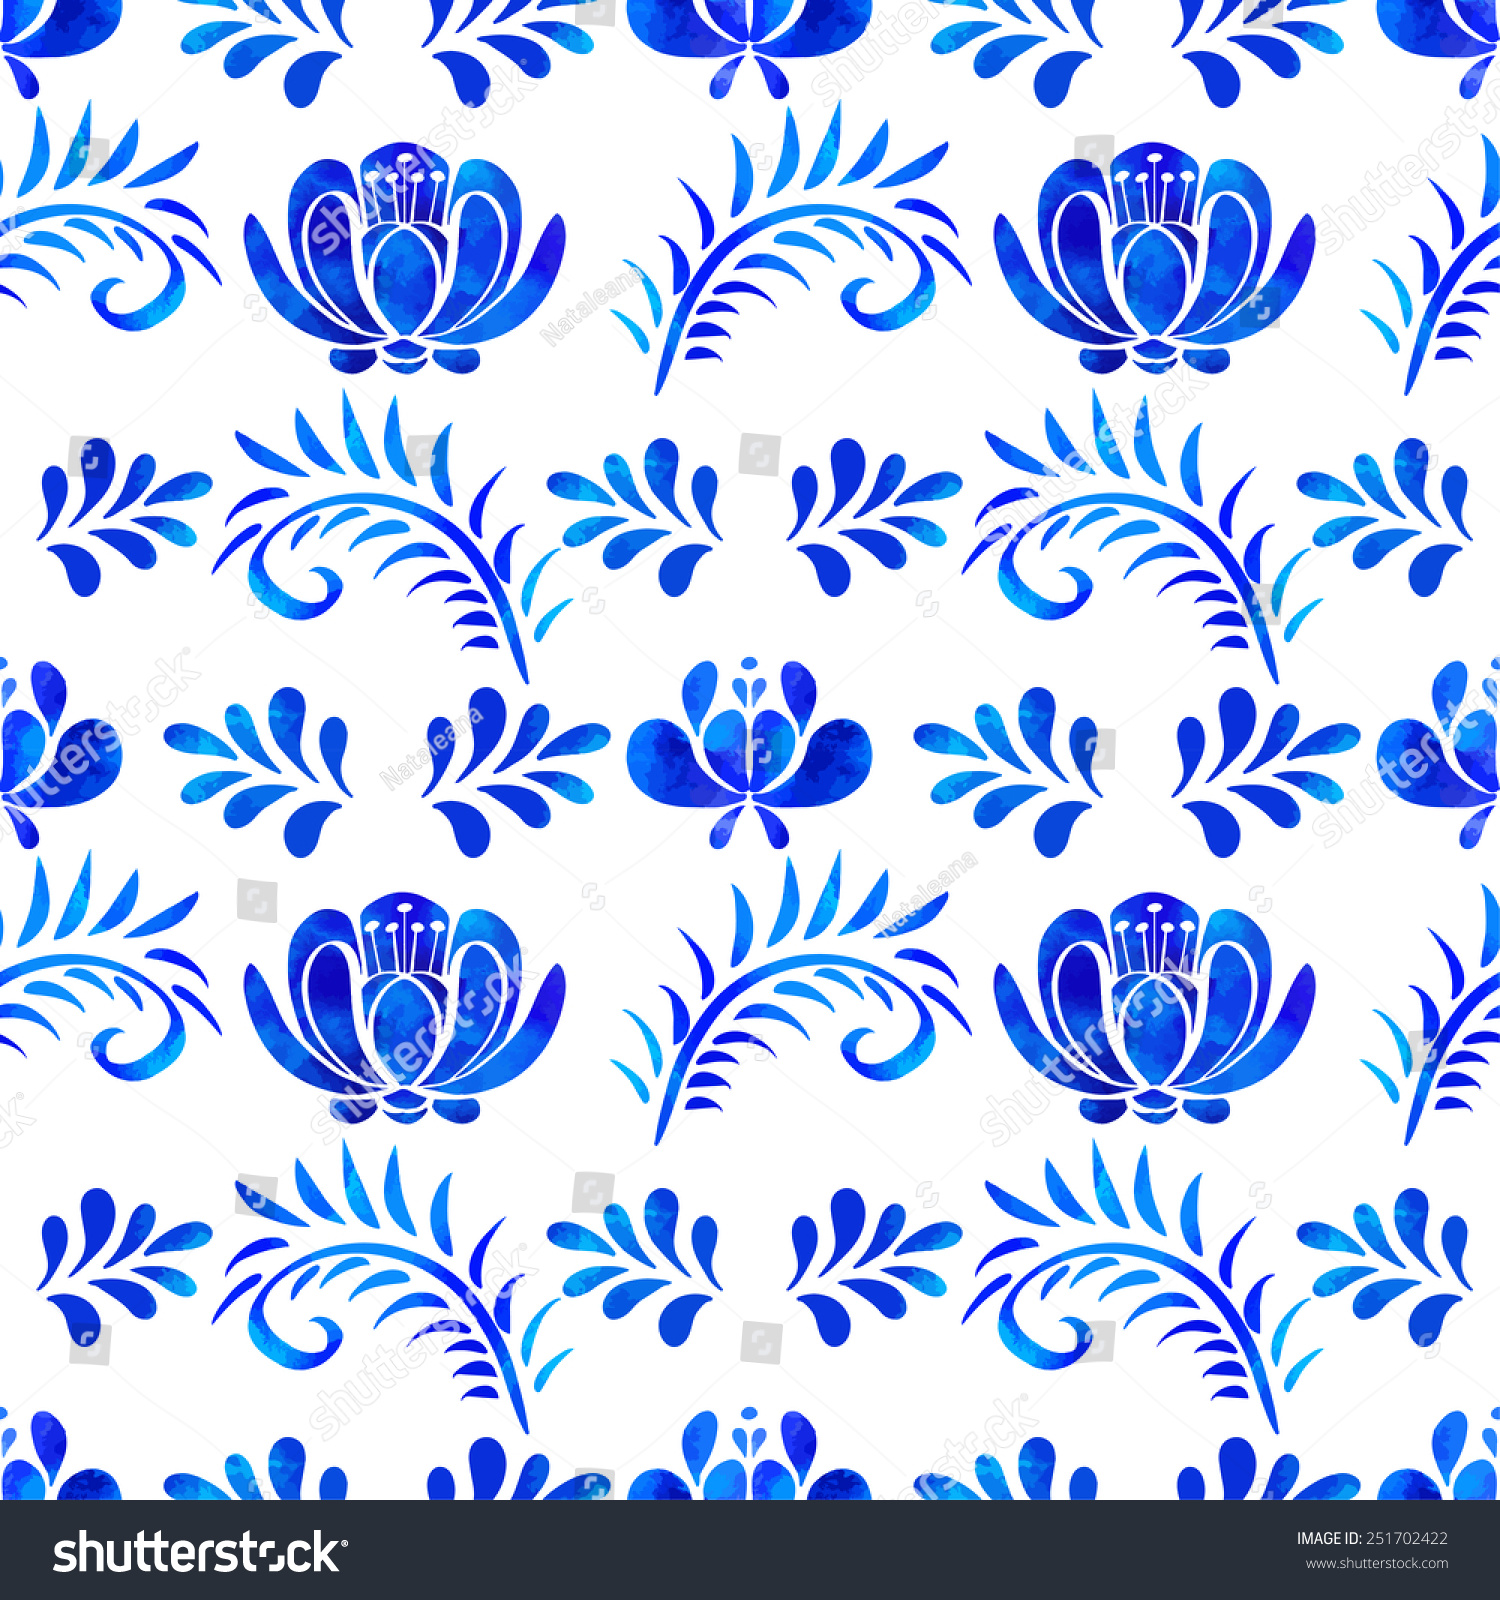 Artistic floral element abstract gzhel folk art blue flowers stock - Seamless Pattern With Watercolor Blue Flowers Leafs On White Background Repeating Background Texture In